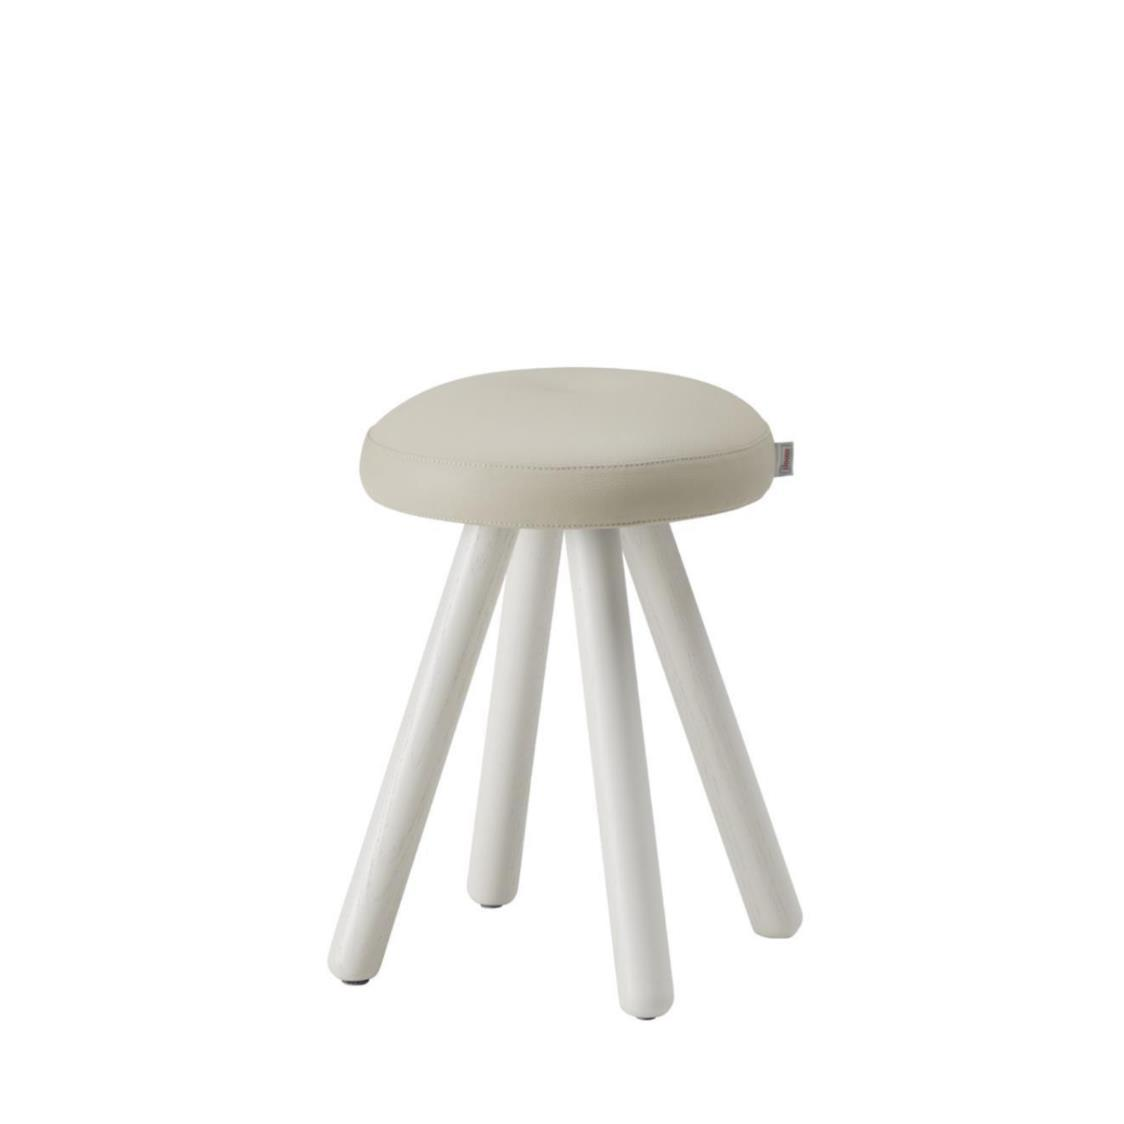 iloom Miel Gallery Wooden Round Stool IVLBG